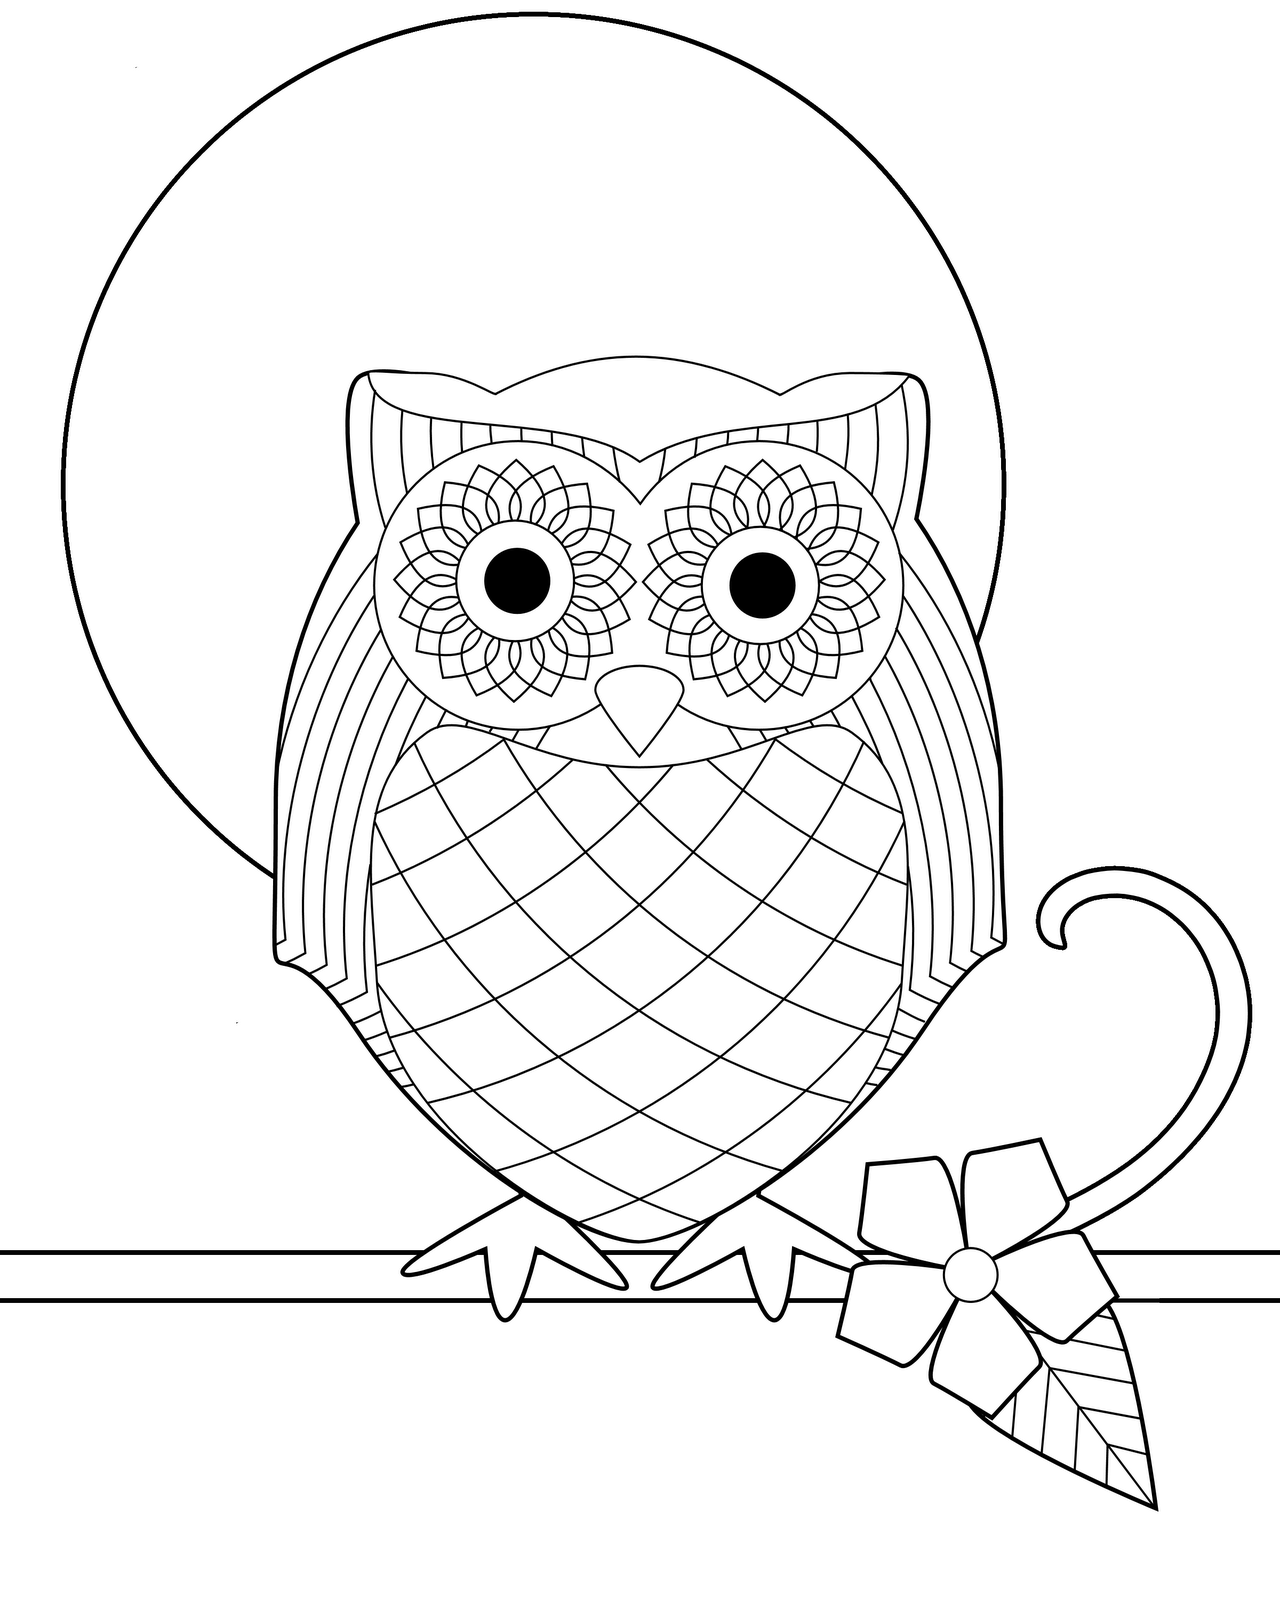 baby owl coloring pages - Book Pictures To Color